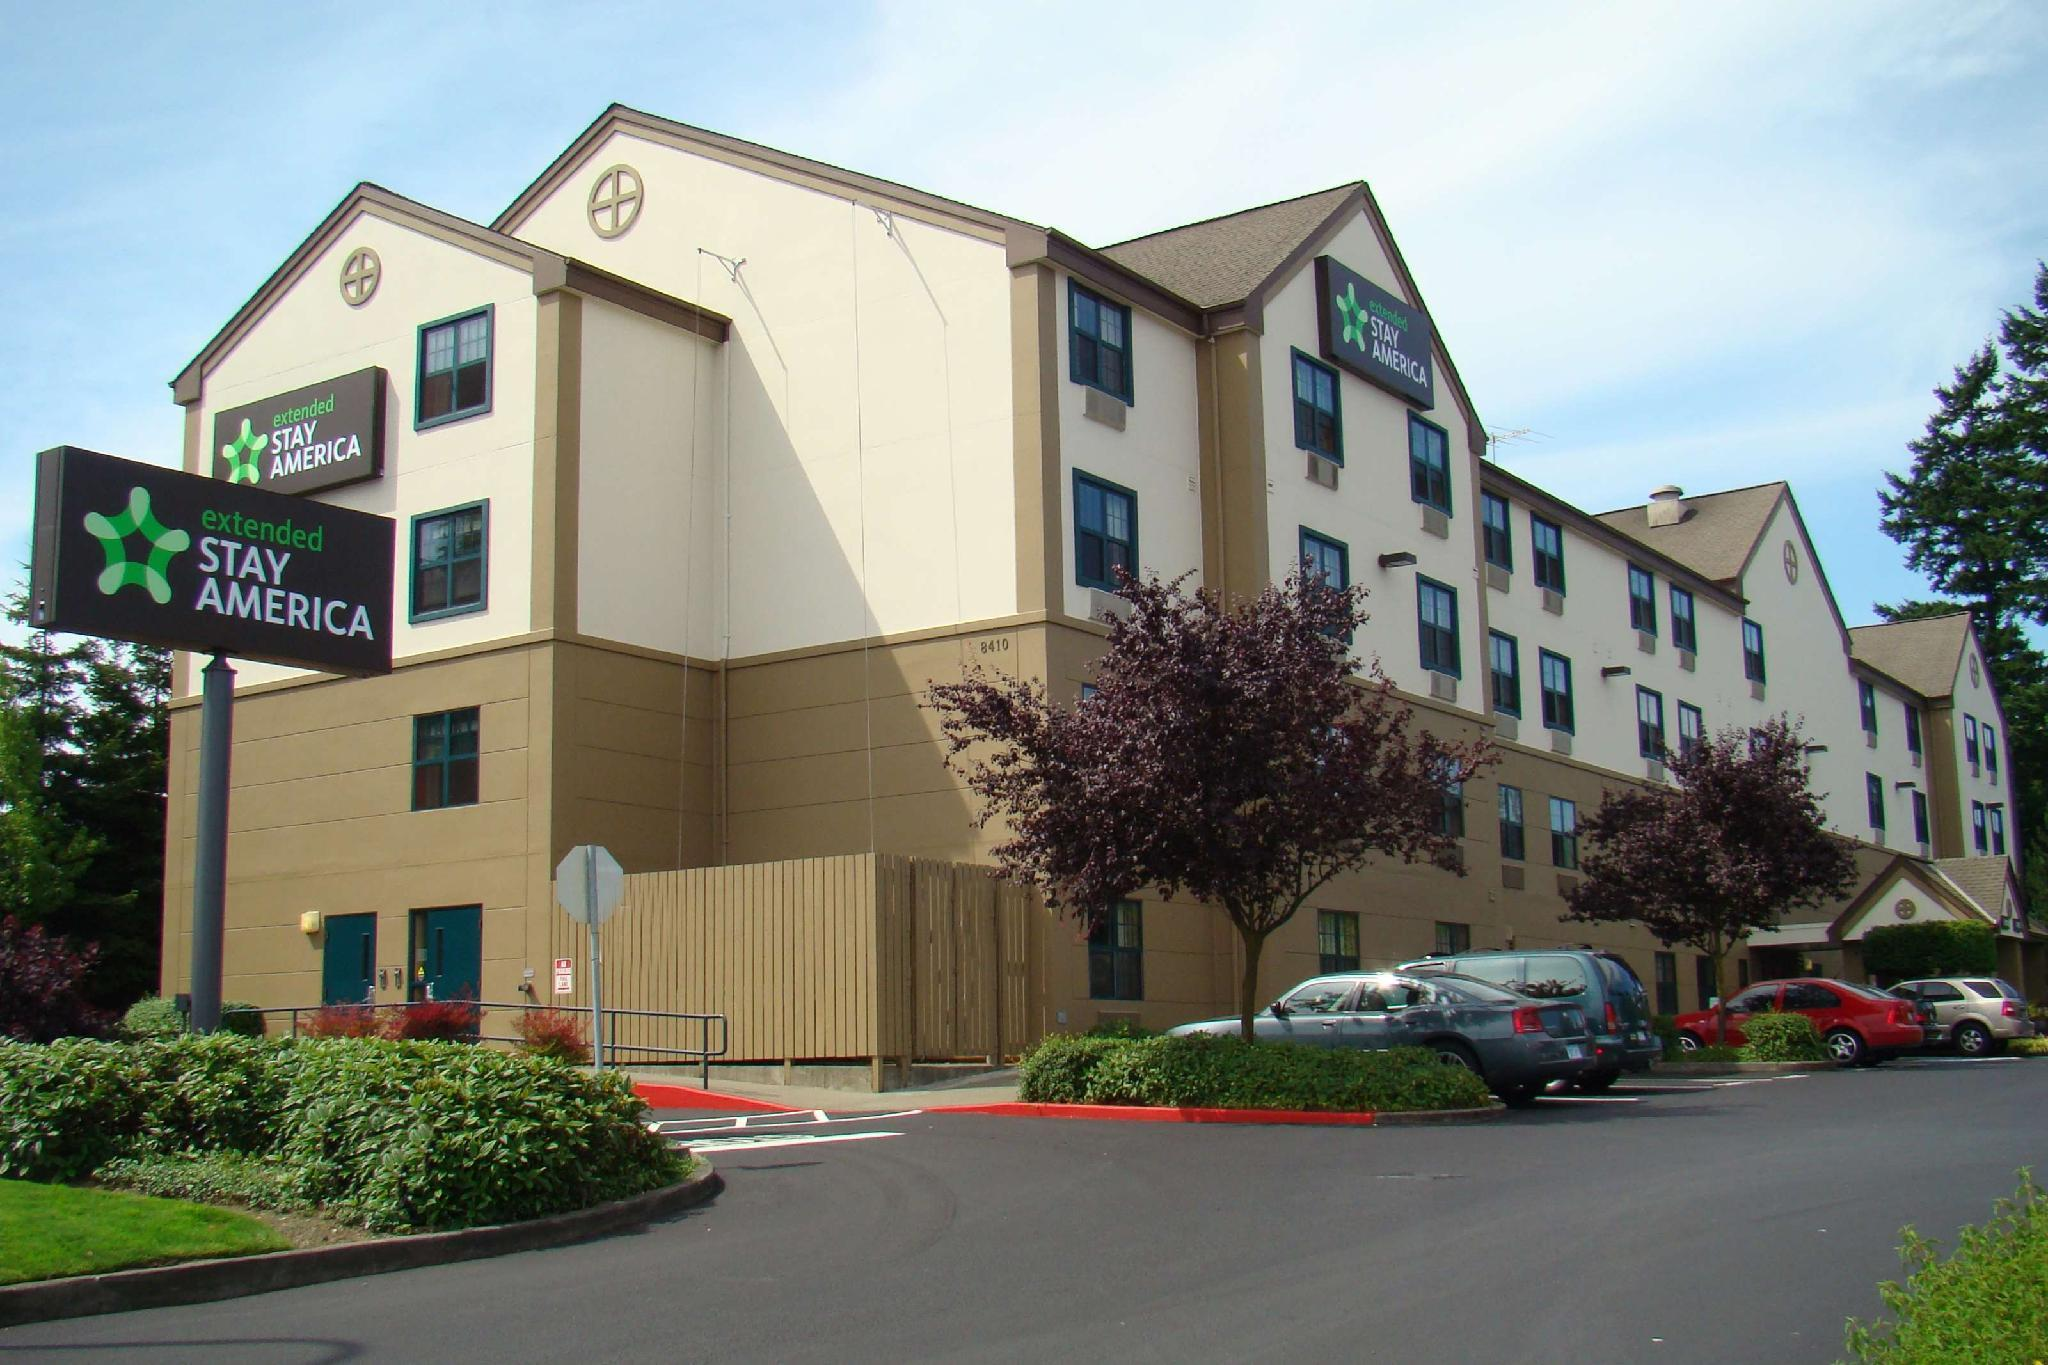 Extended Stay America Seattle Everett North, Snohomish